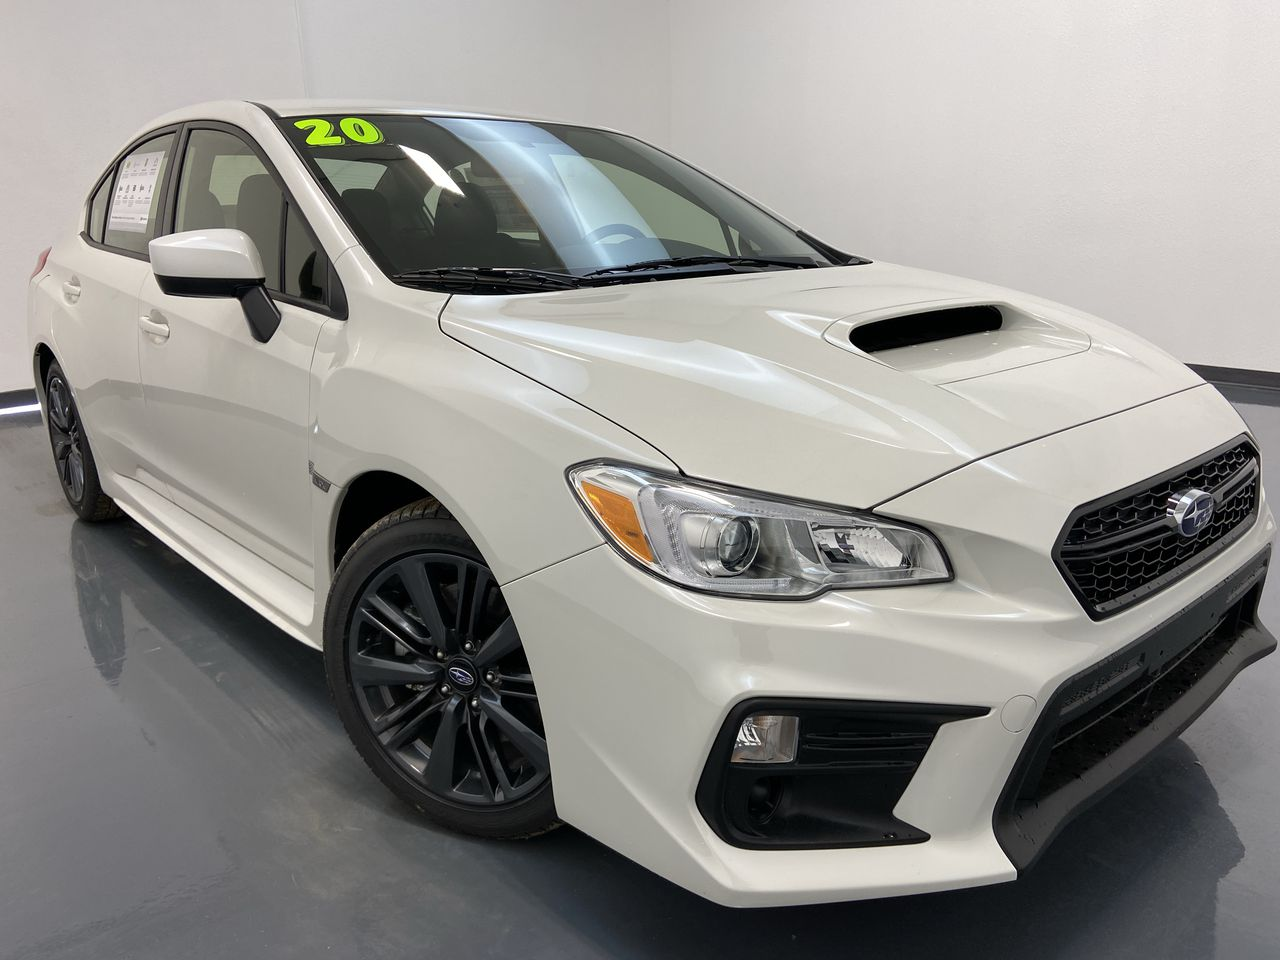 2020 Subaru WRX 4D Sedan 6sp  - SB8794  - C & S Car Company